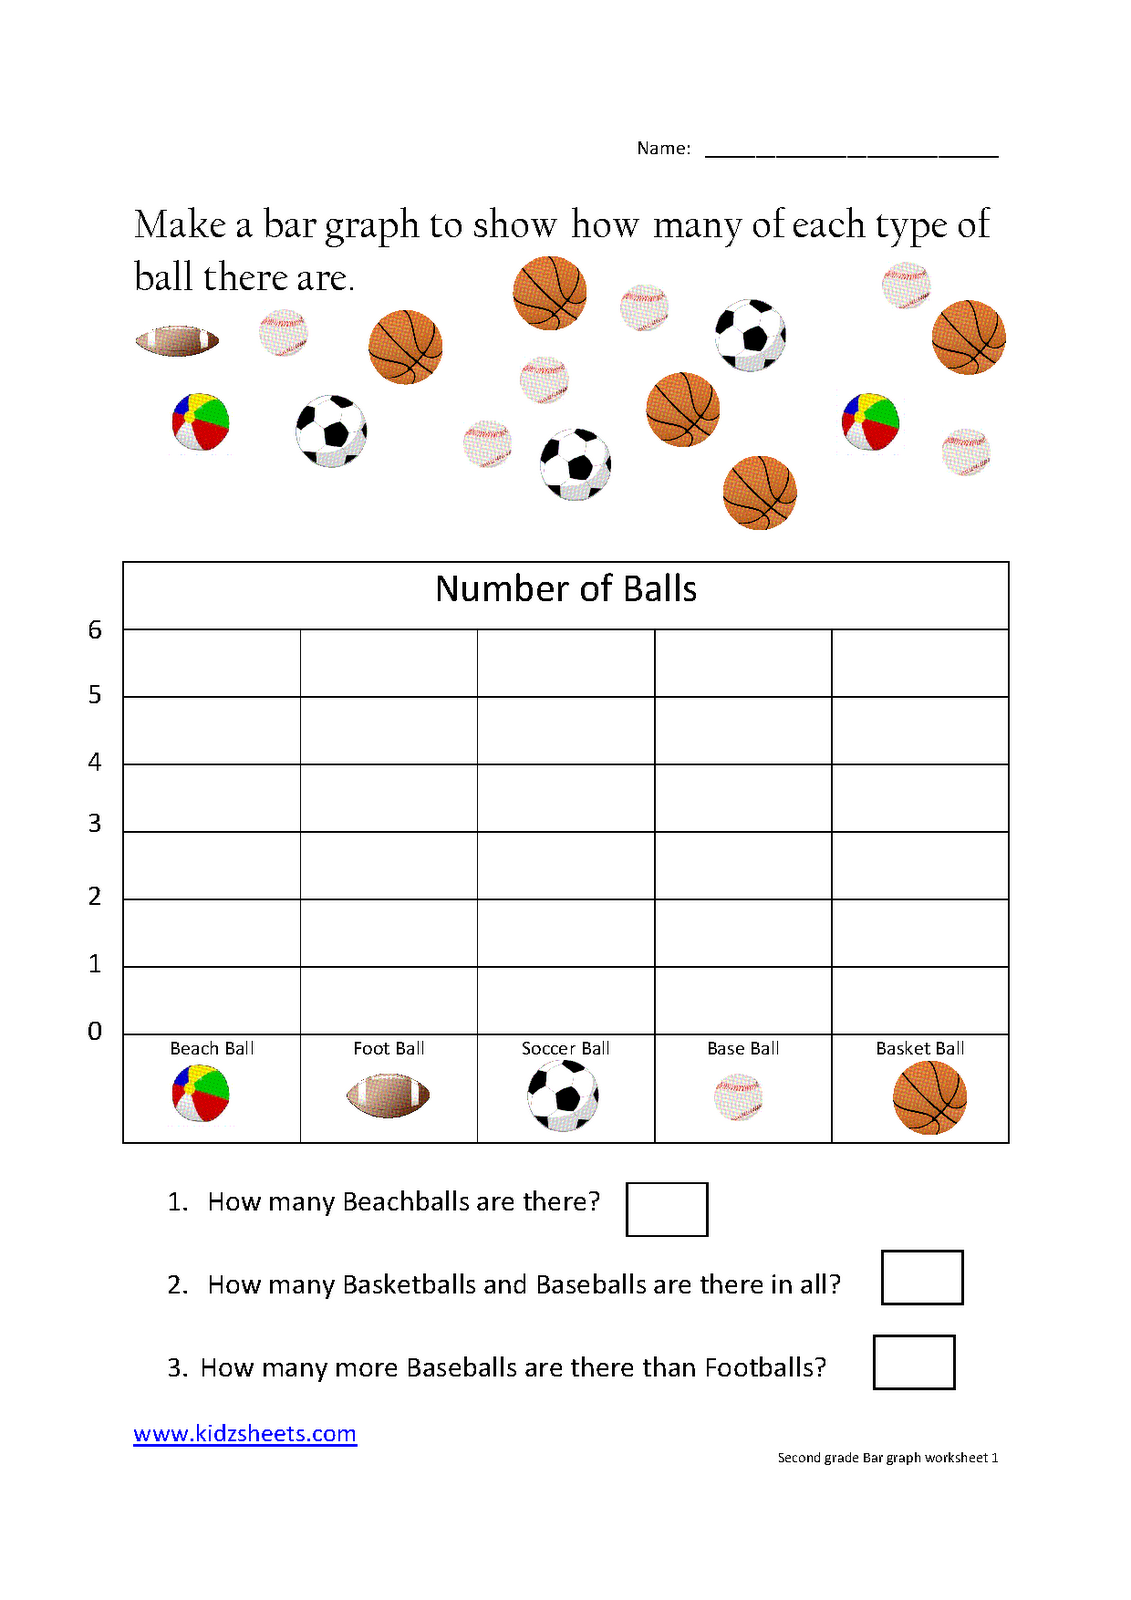 Kidz Worksheets Second Grade Bar Graph Worksheet1 – Free Second Grade Worksheets